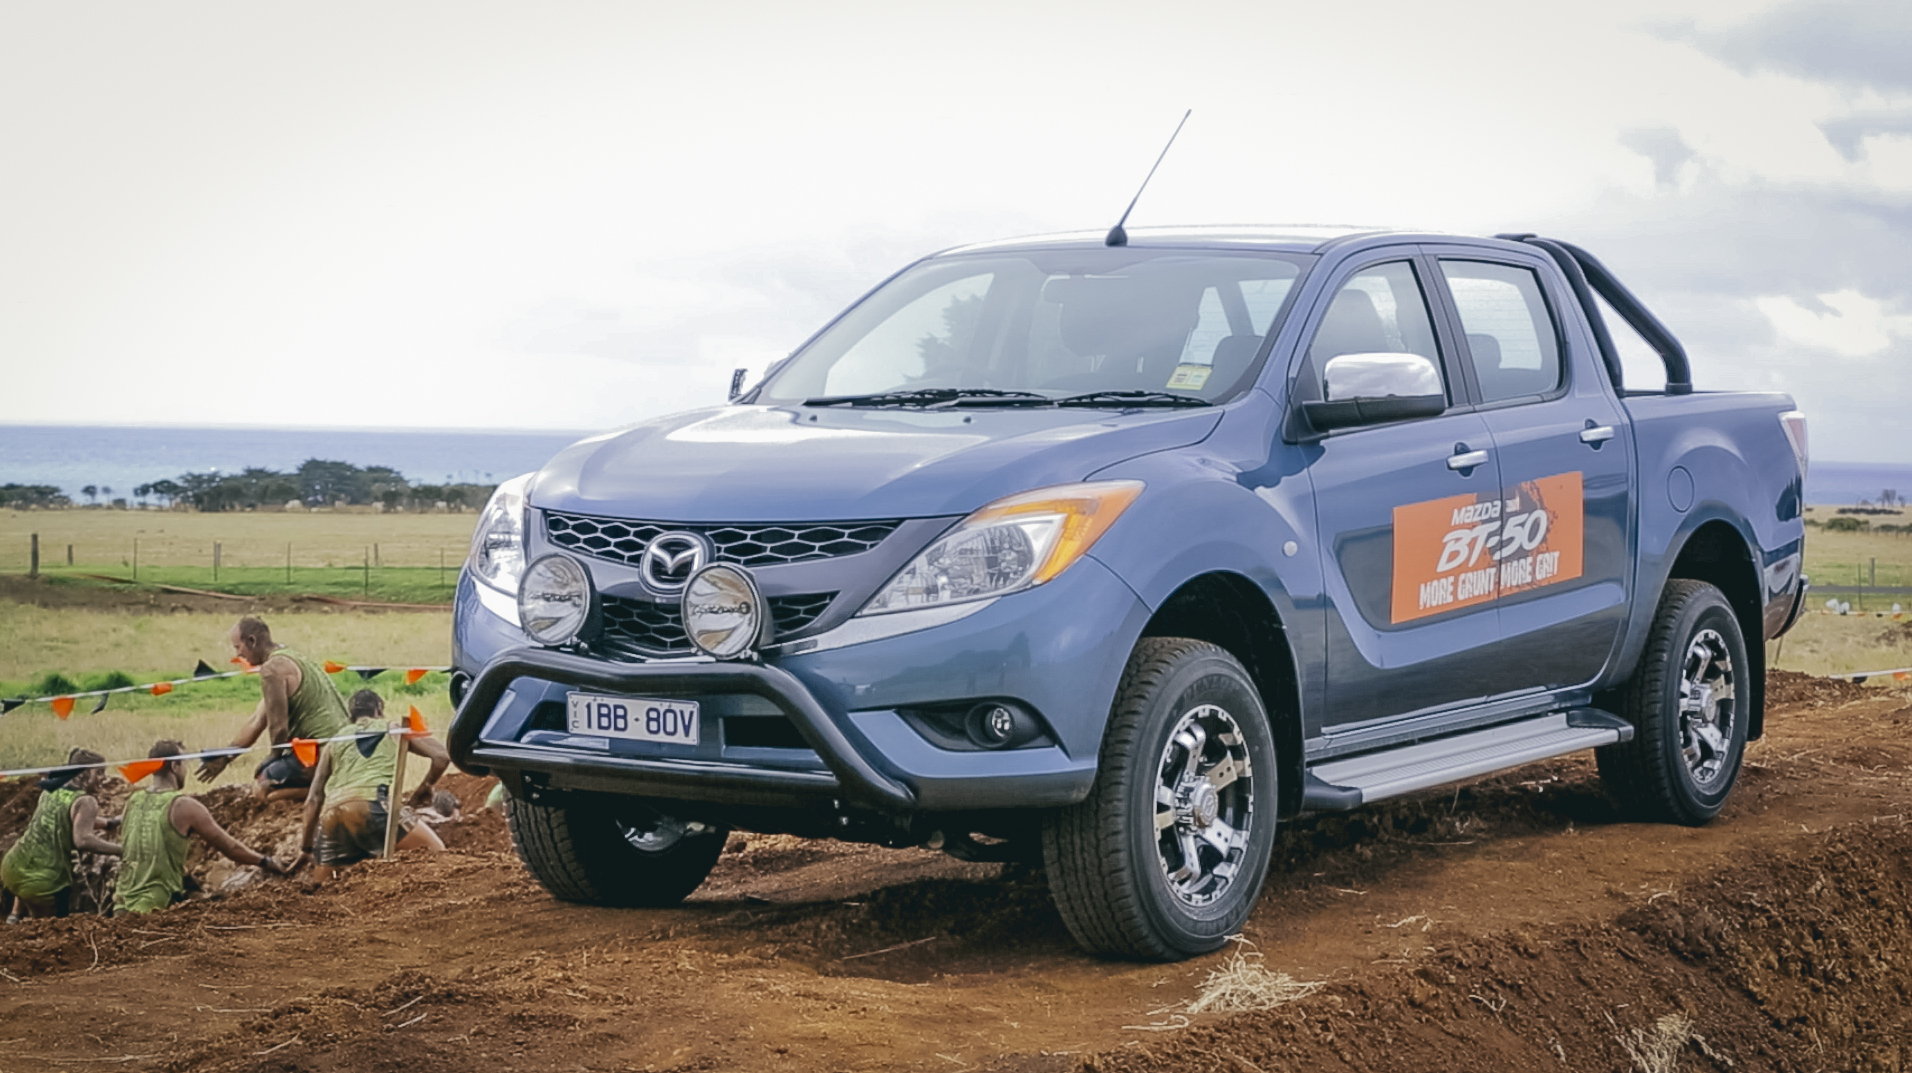 2014 Mazda Bt-50 - pictures, information and specs - Auto ...